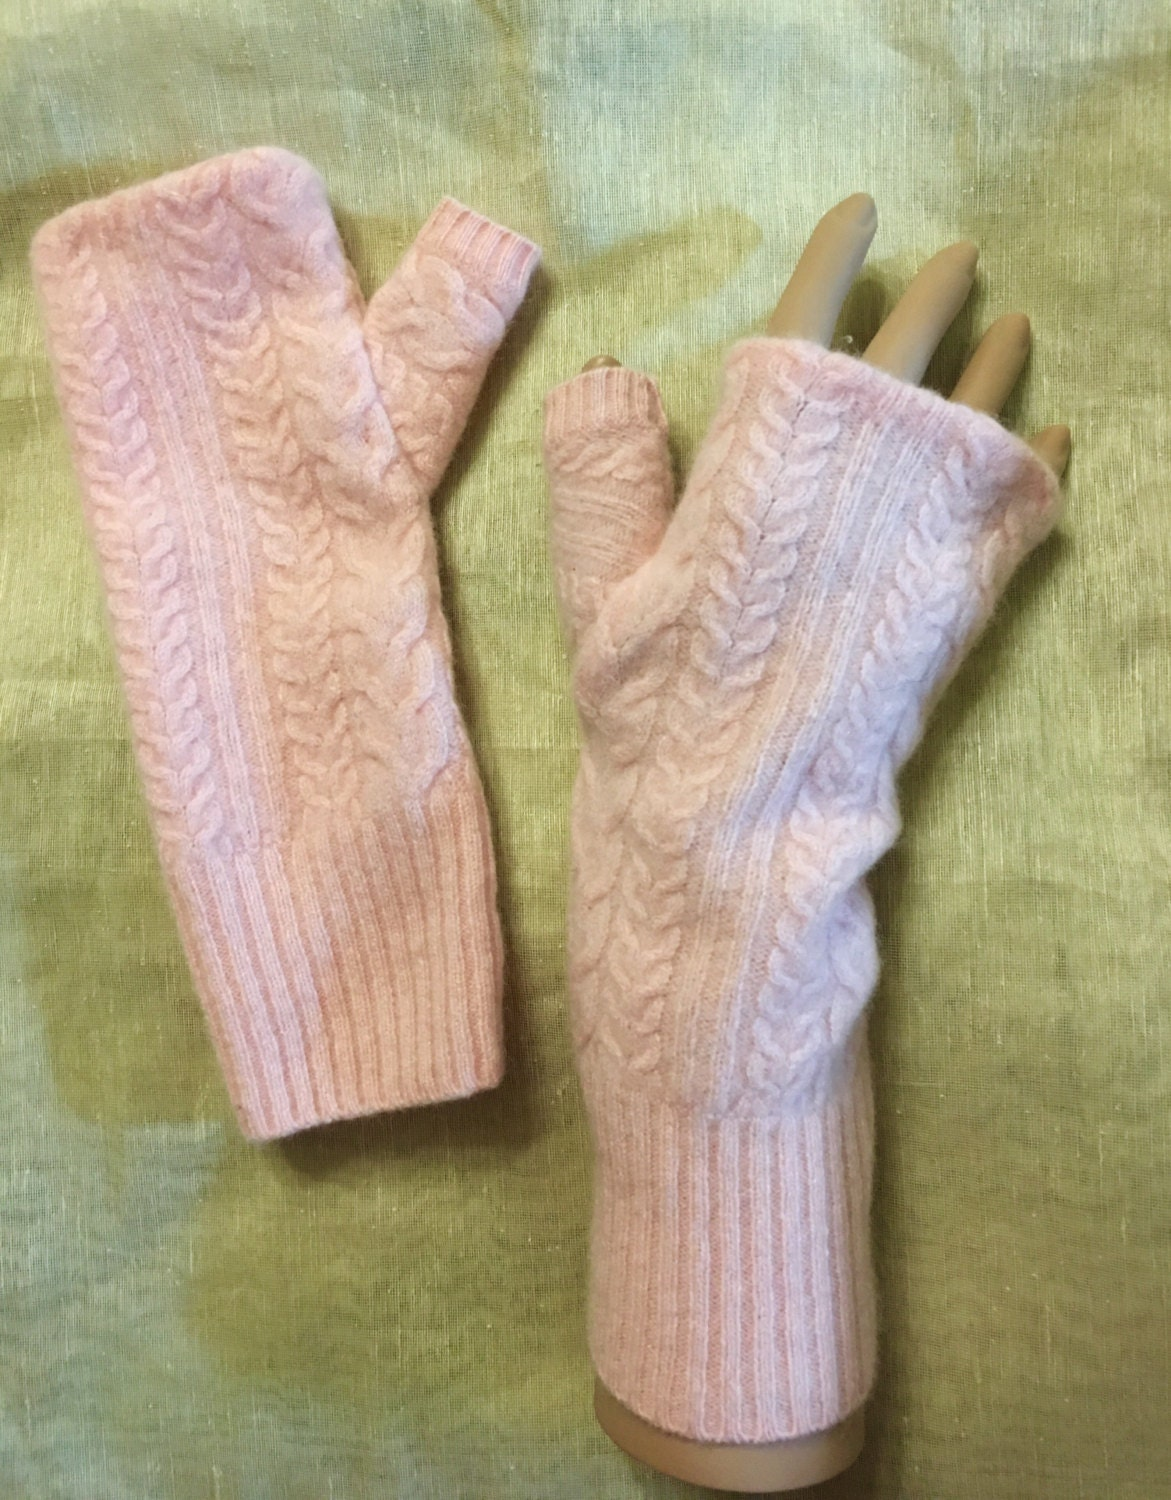 Knitting Pattern Cashmere Gloves : A36 peach pink cashmere fingerless gloves cable knit pattern